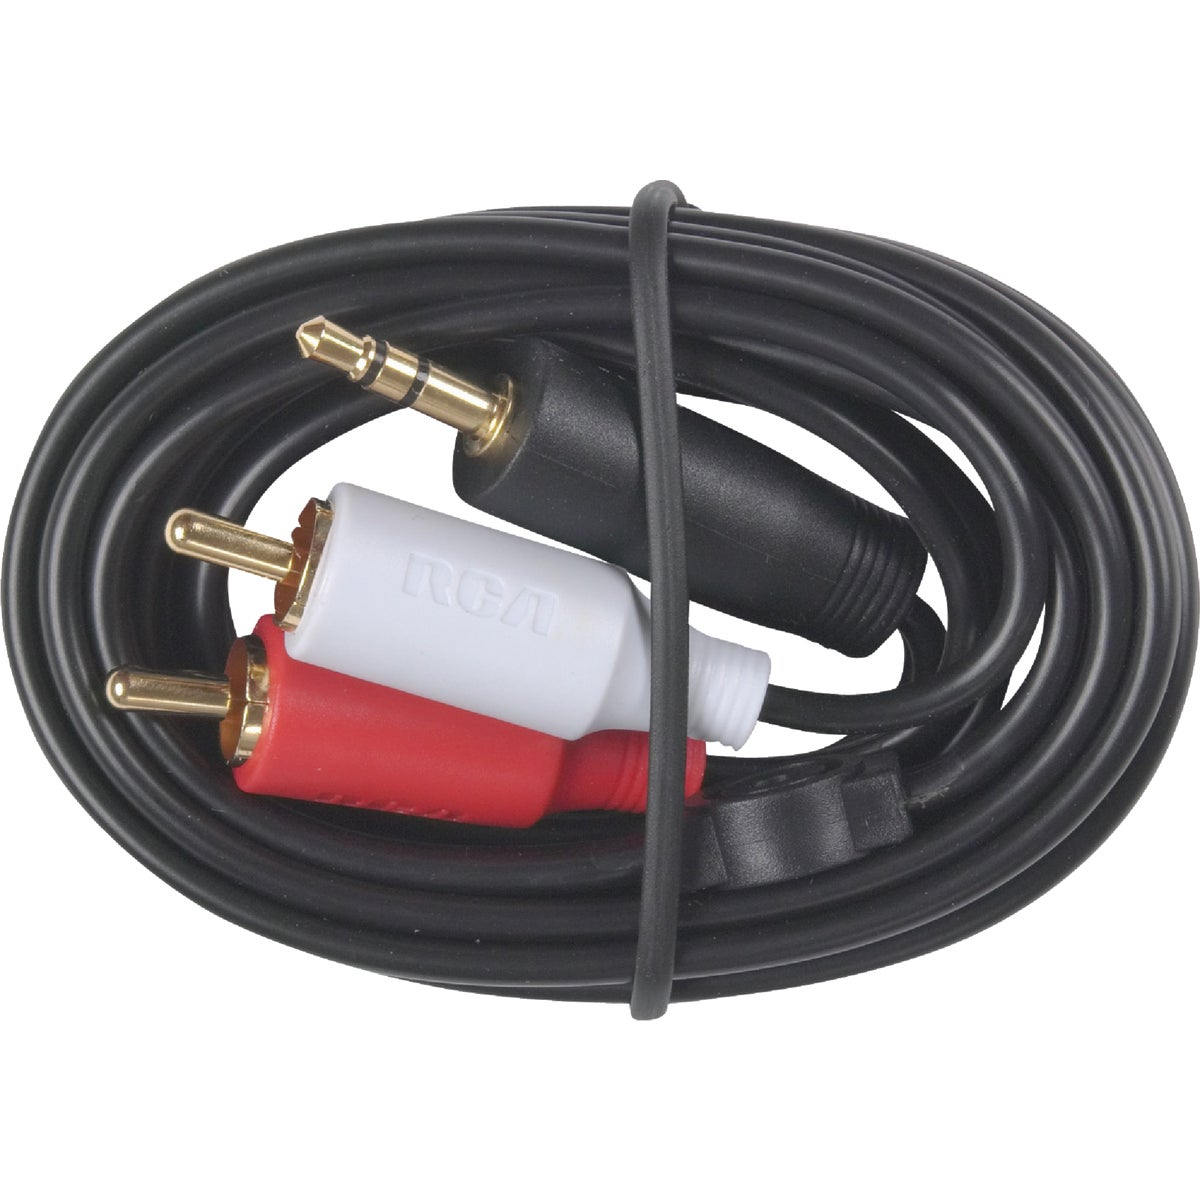 3' Y STEREO CABLE PLUG - AH205R by Audiovox Accessories